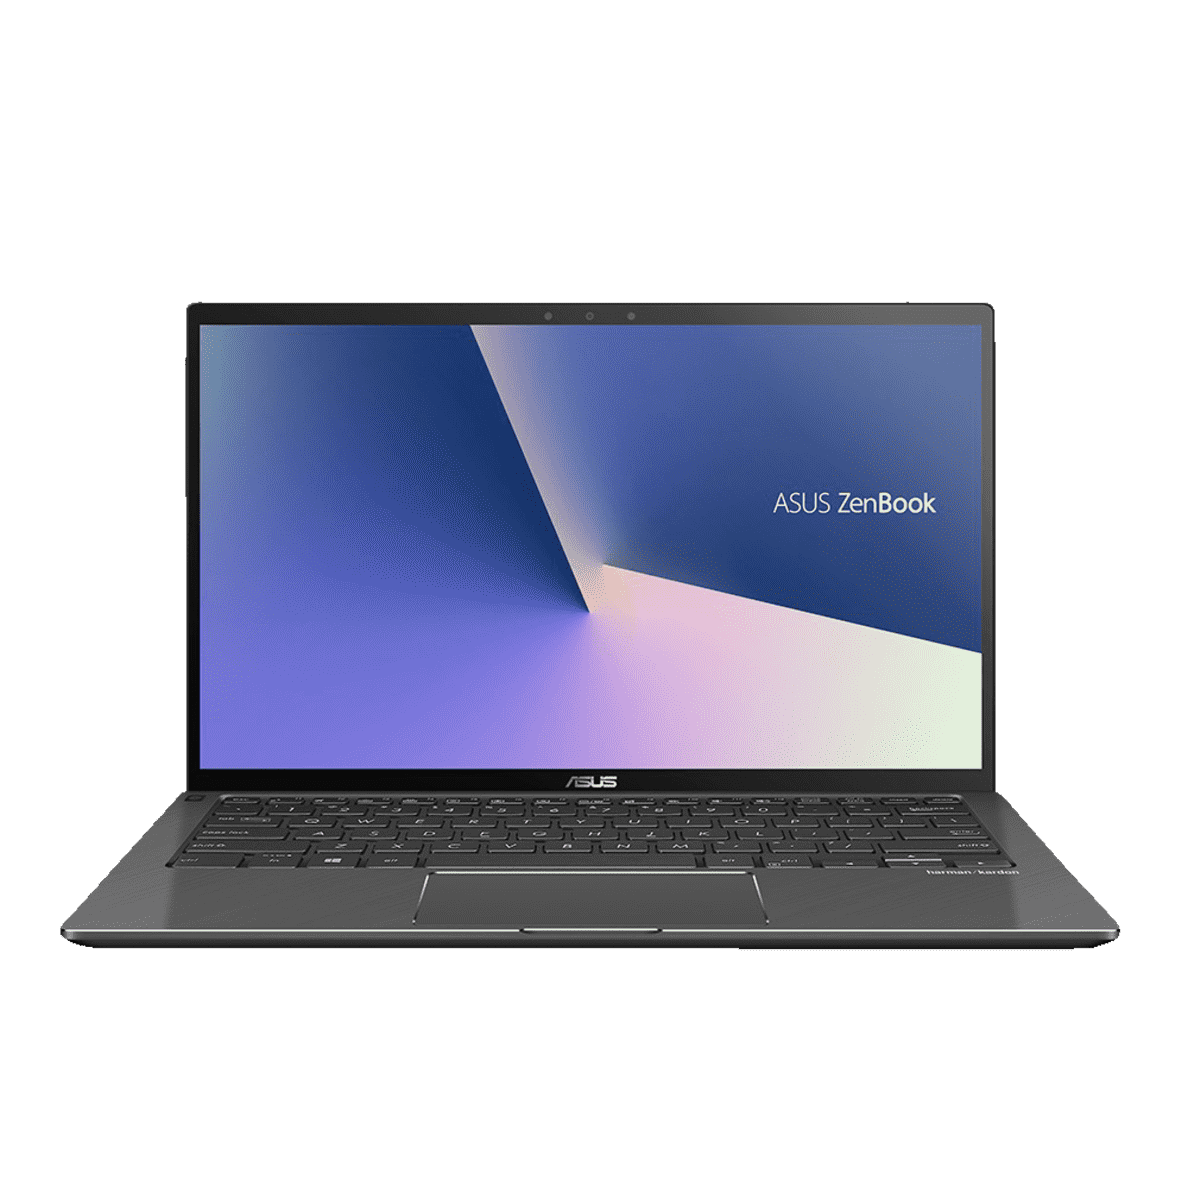 ASUS UX362FA-EL229T Notebook mit Core™ i5, 8 GB RAM, 256 GB & Intel UHD Graphics 620 in Grau